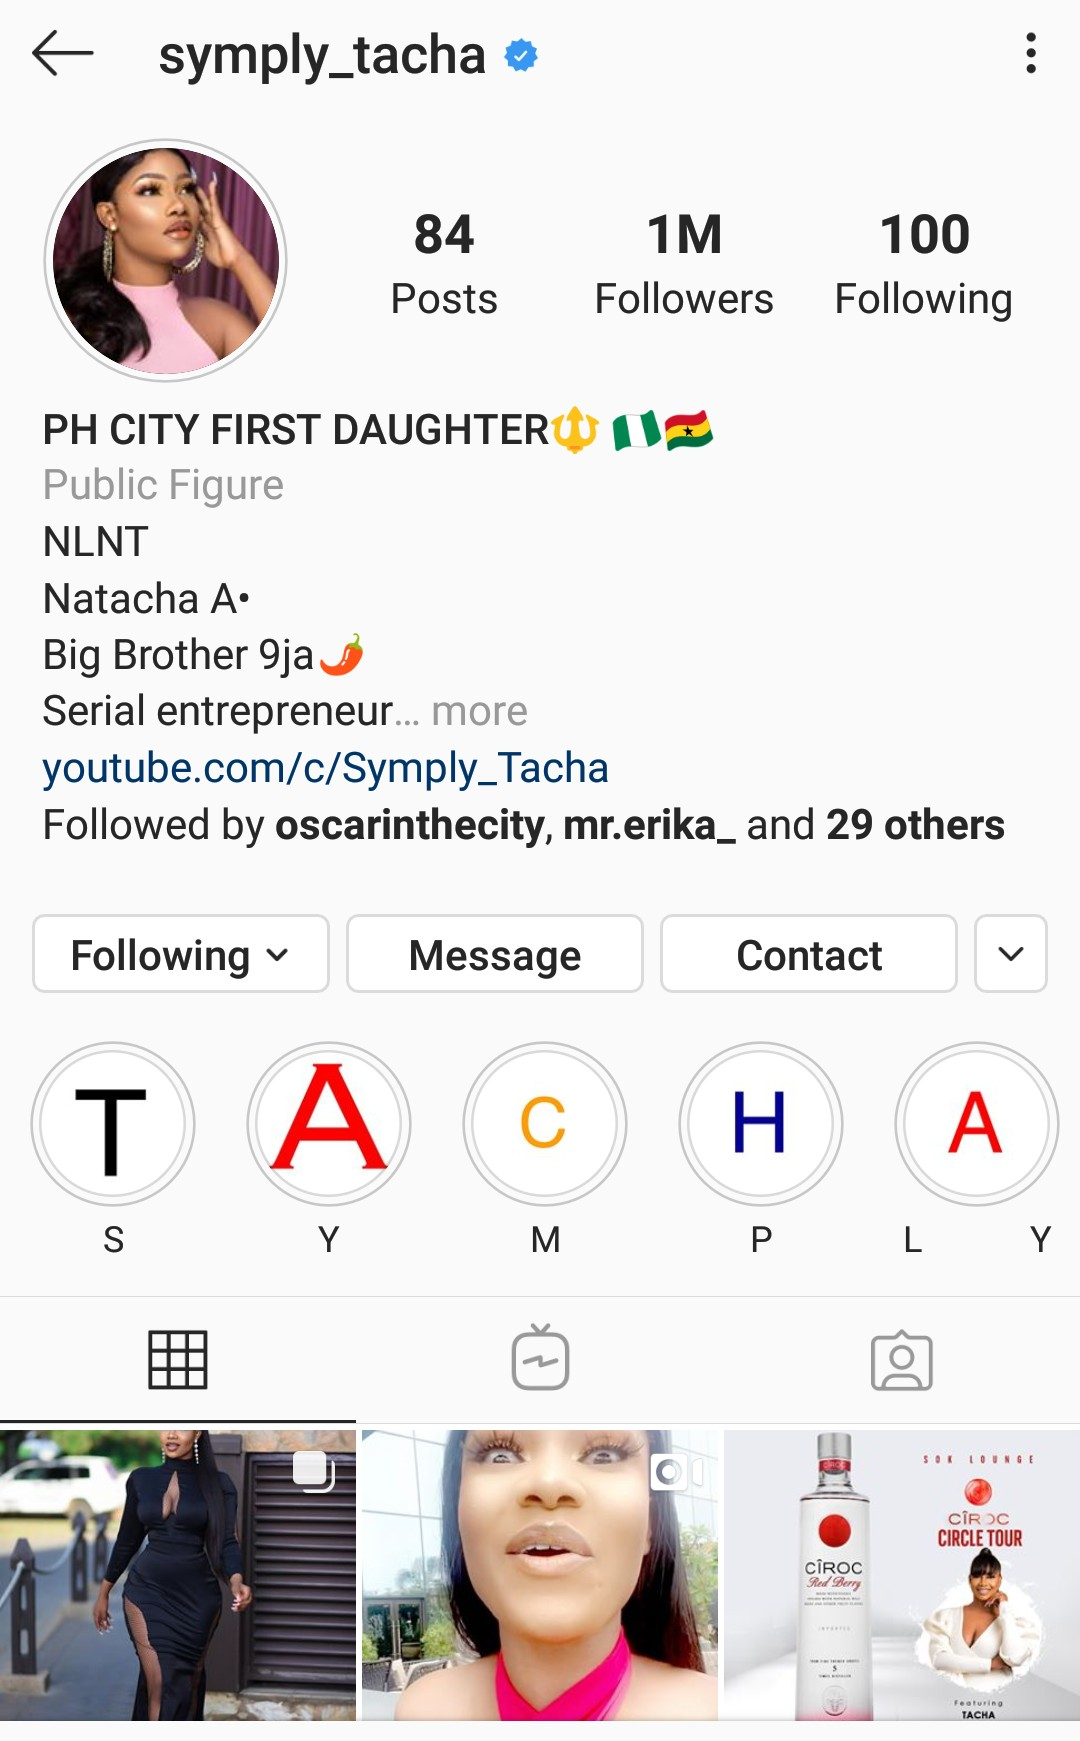 BBNaija: Tacha becomes first 'Pepper Dem' housemate to hit 1m followers on IG